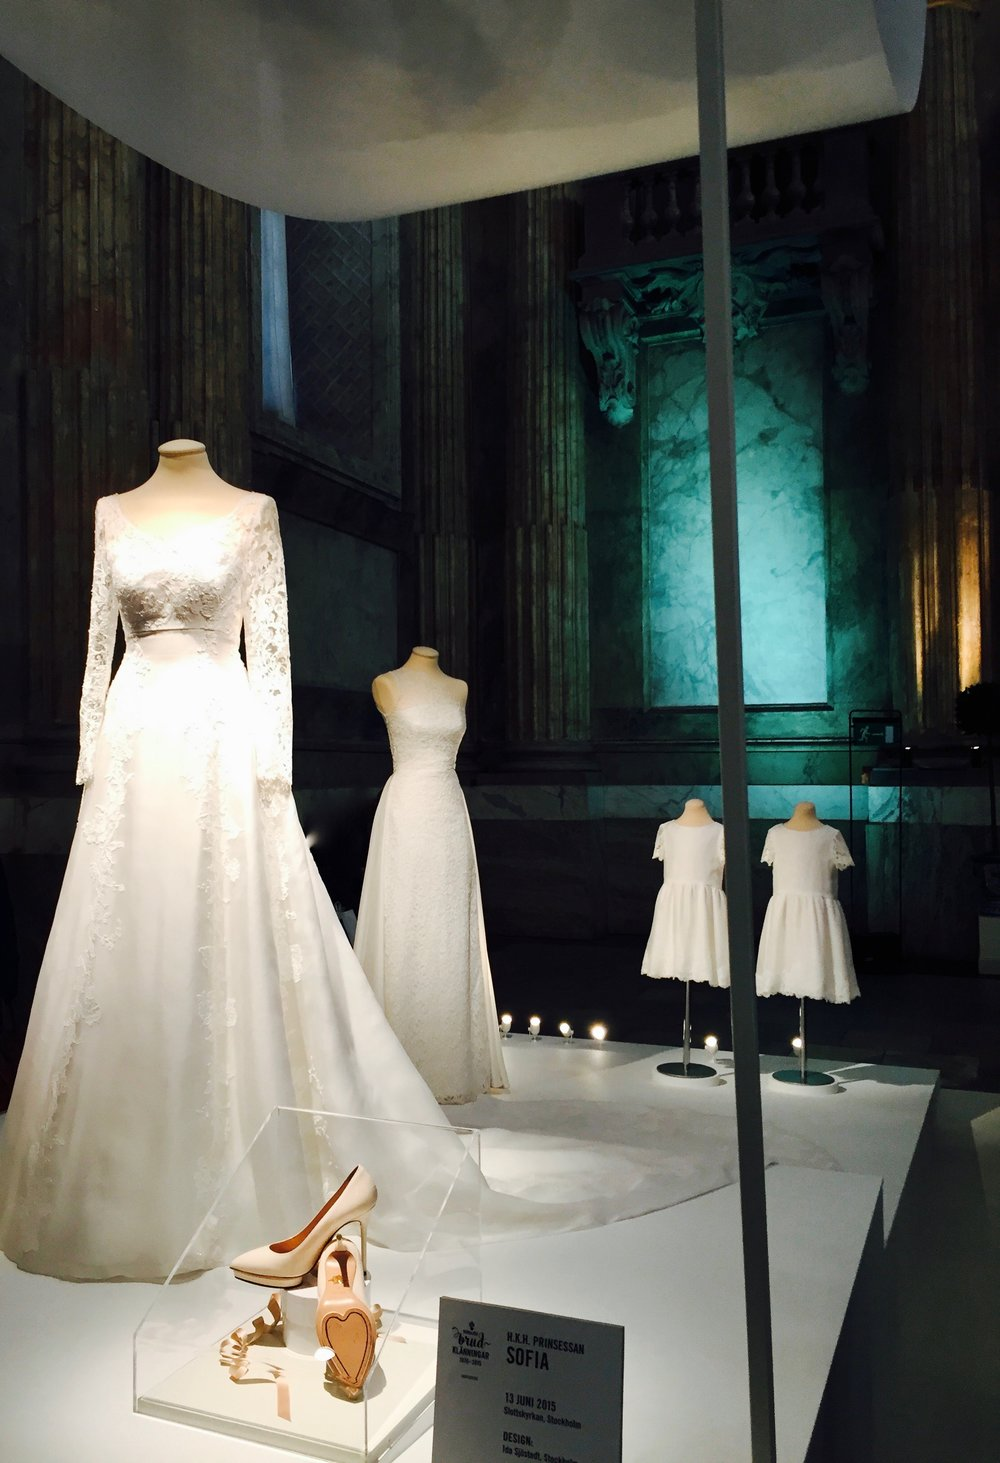 Princess Sofia's wedding dress. Designer: Ida Sjöstedt